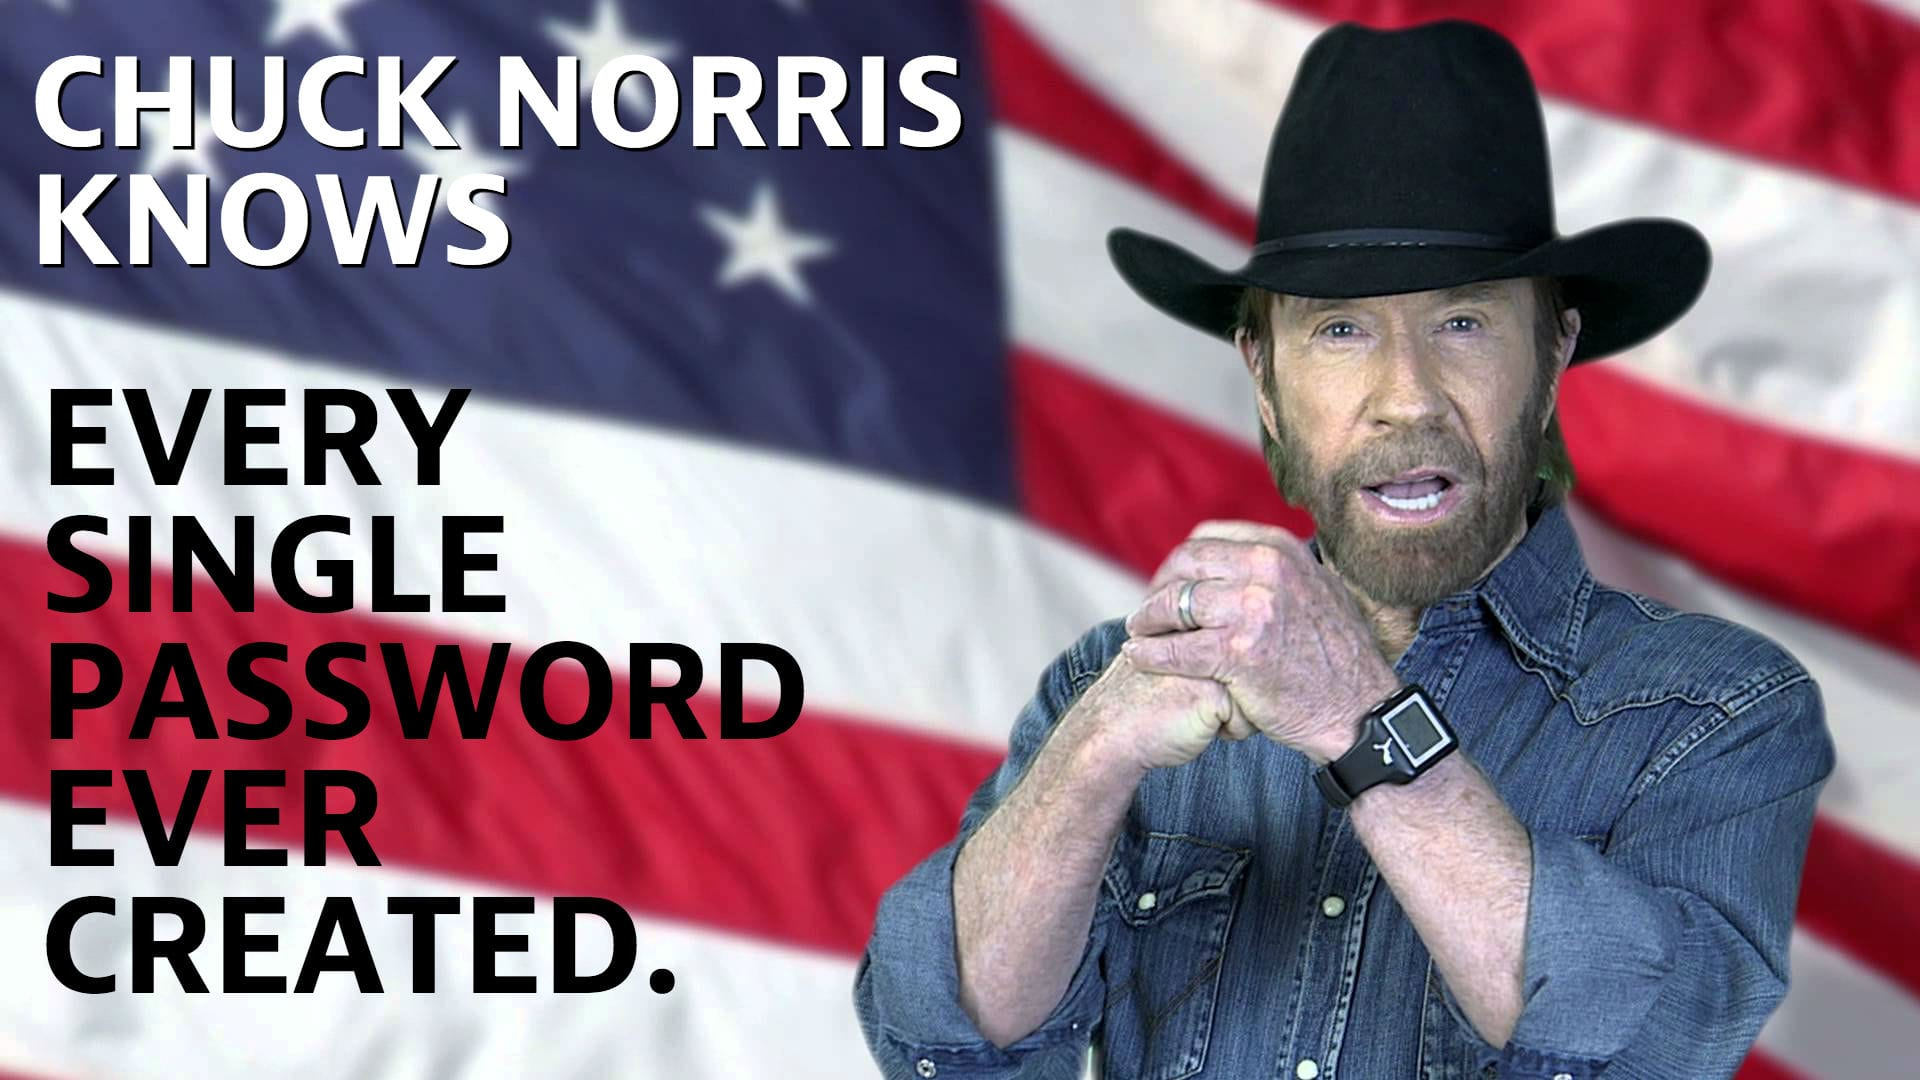 Chuck Norris Backgrounds